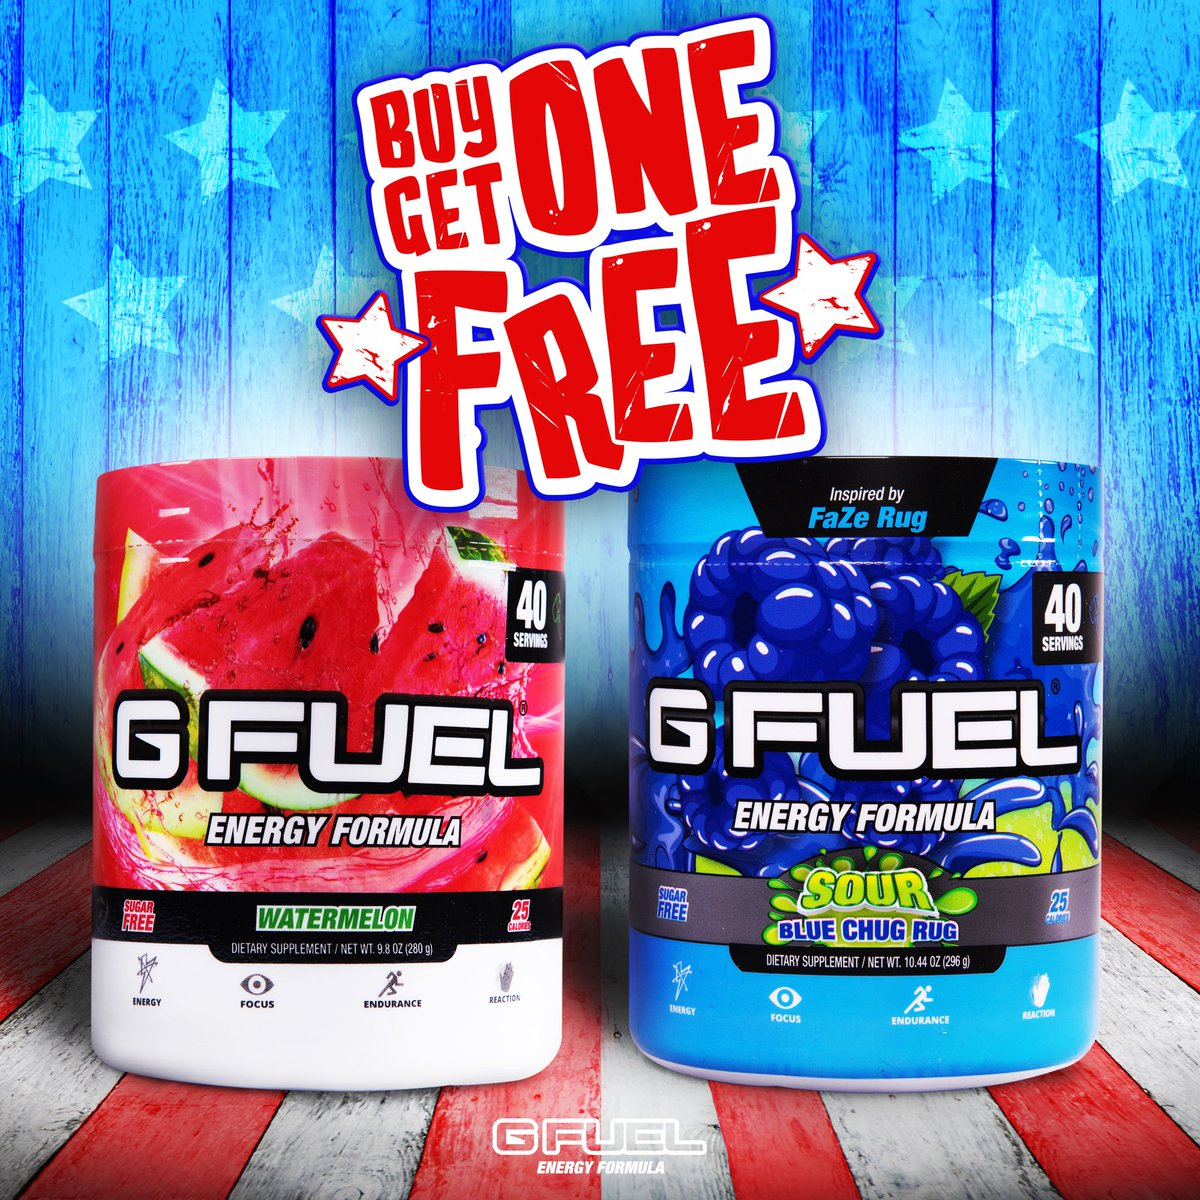 G Fuel On Twitter Icymi Our World Famous Buy 1 Get 1 Free Memorialdayweekend Sale On Gfuel Tubs Is Officially Live Mix Match Flavors Promo Codes Not Valid With